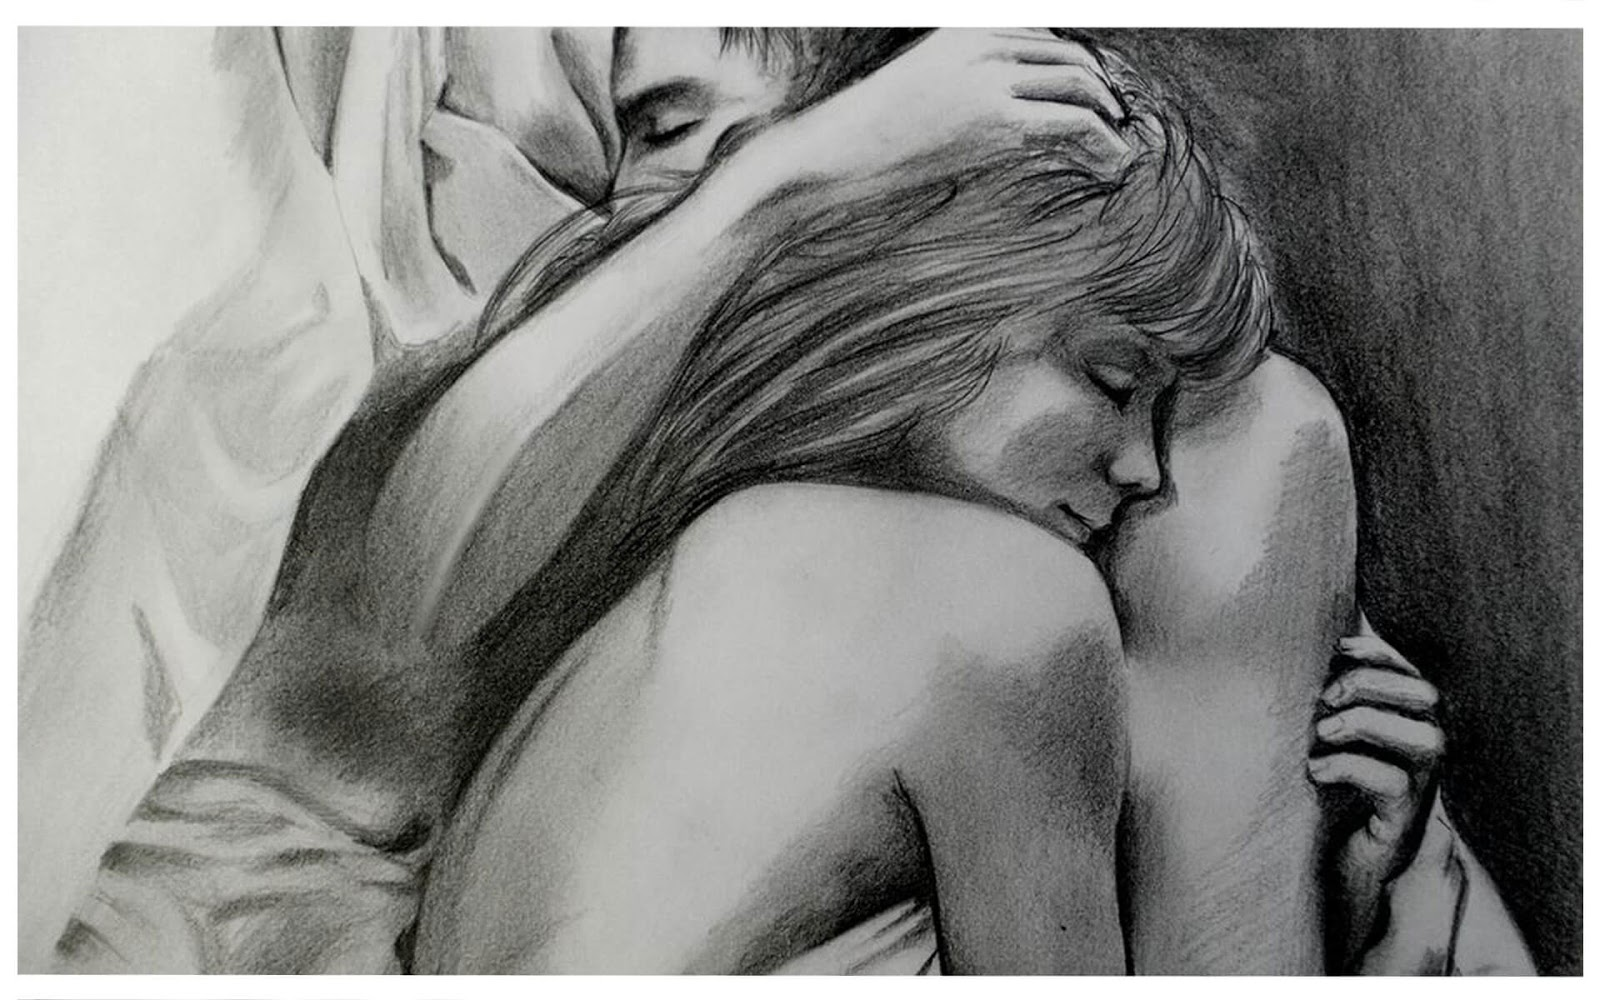 20 Mind-Blowing Pencil Drawings By Greek Artist That Illustrate The Beauty Of Love - It's only you and I until the end